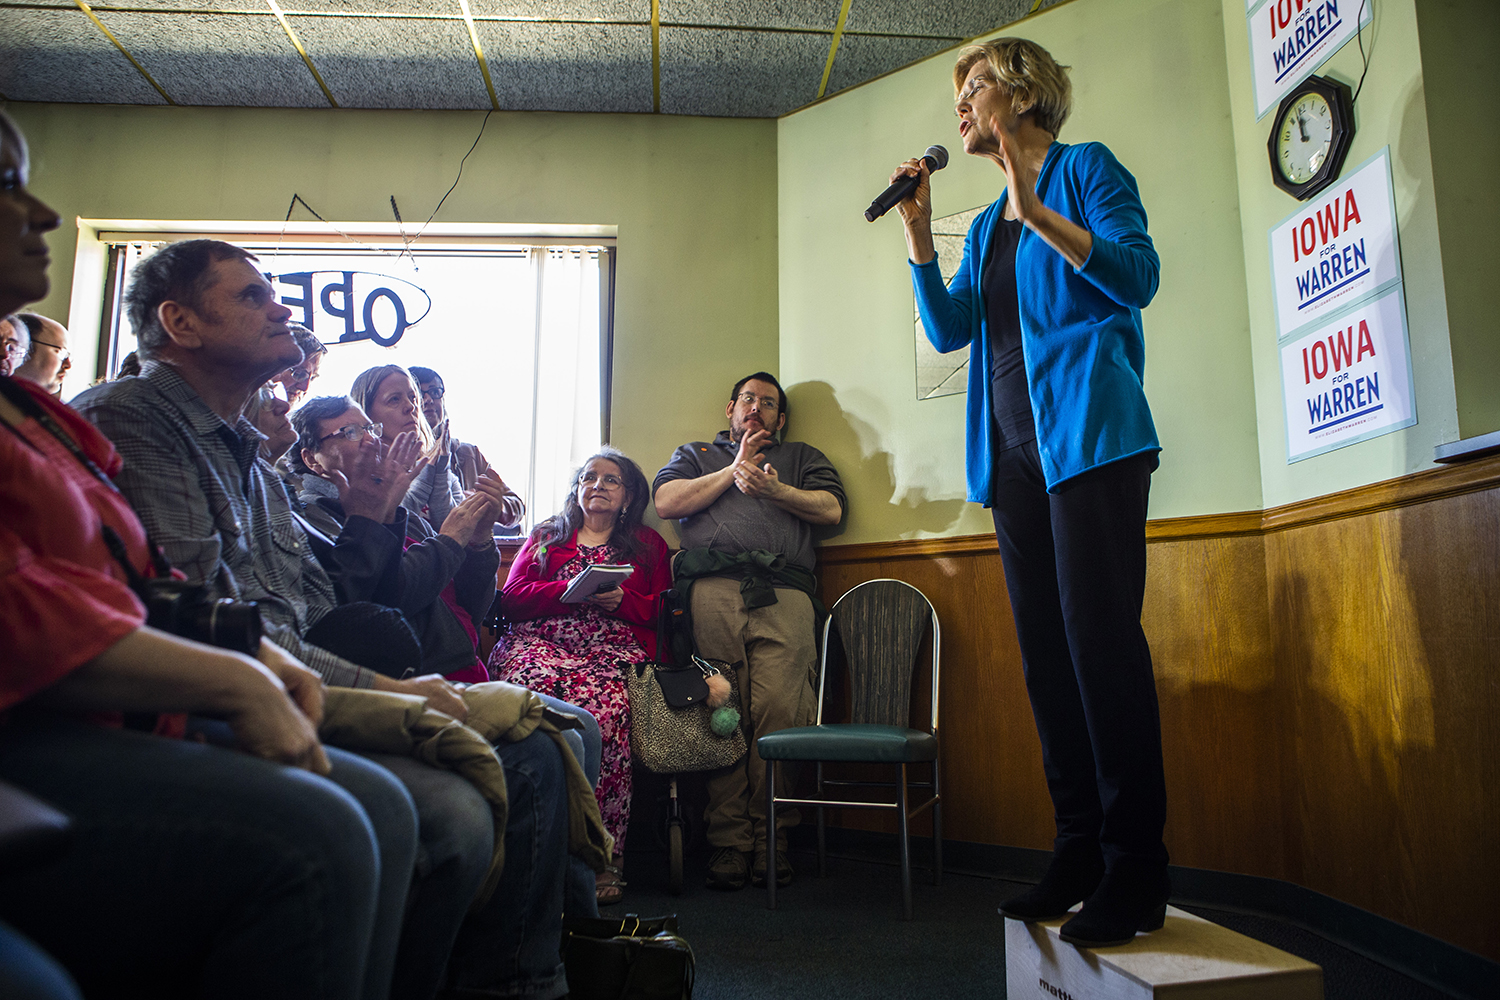 Sen. Elizabeth Warren, D-Mass., speaks during a presidential campaign event at the Tipton Family Restaurant in Tipton on Friday, April 26, 2019.